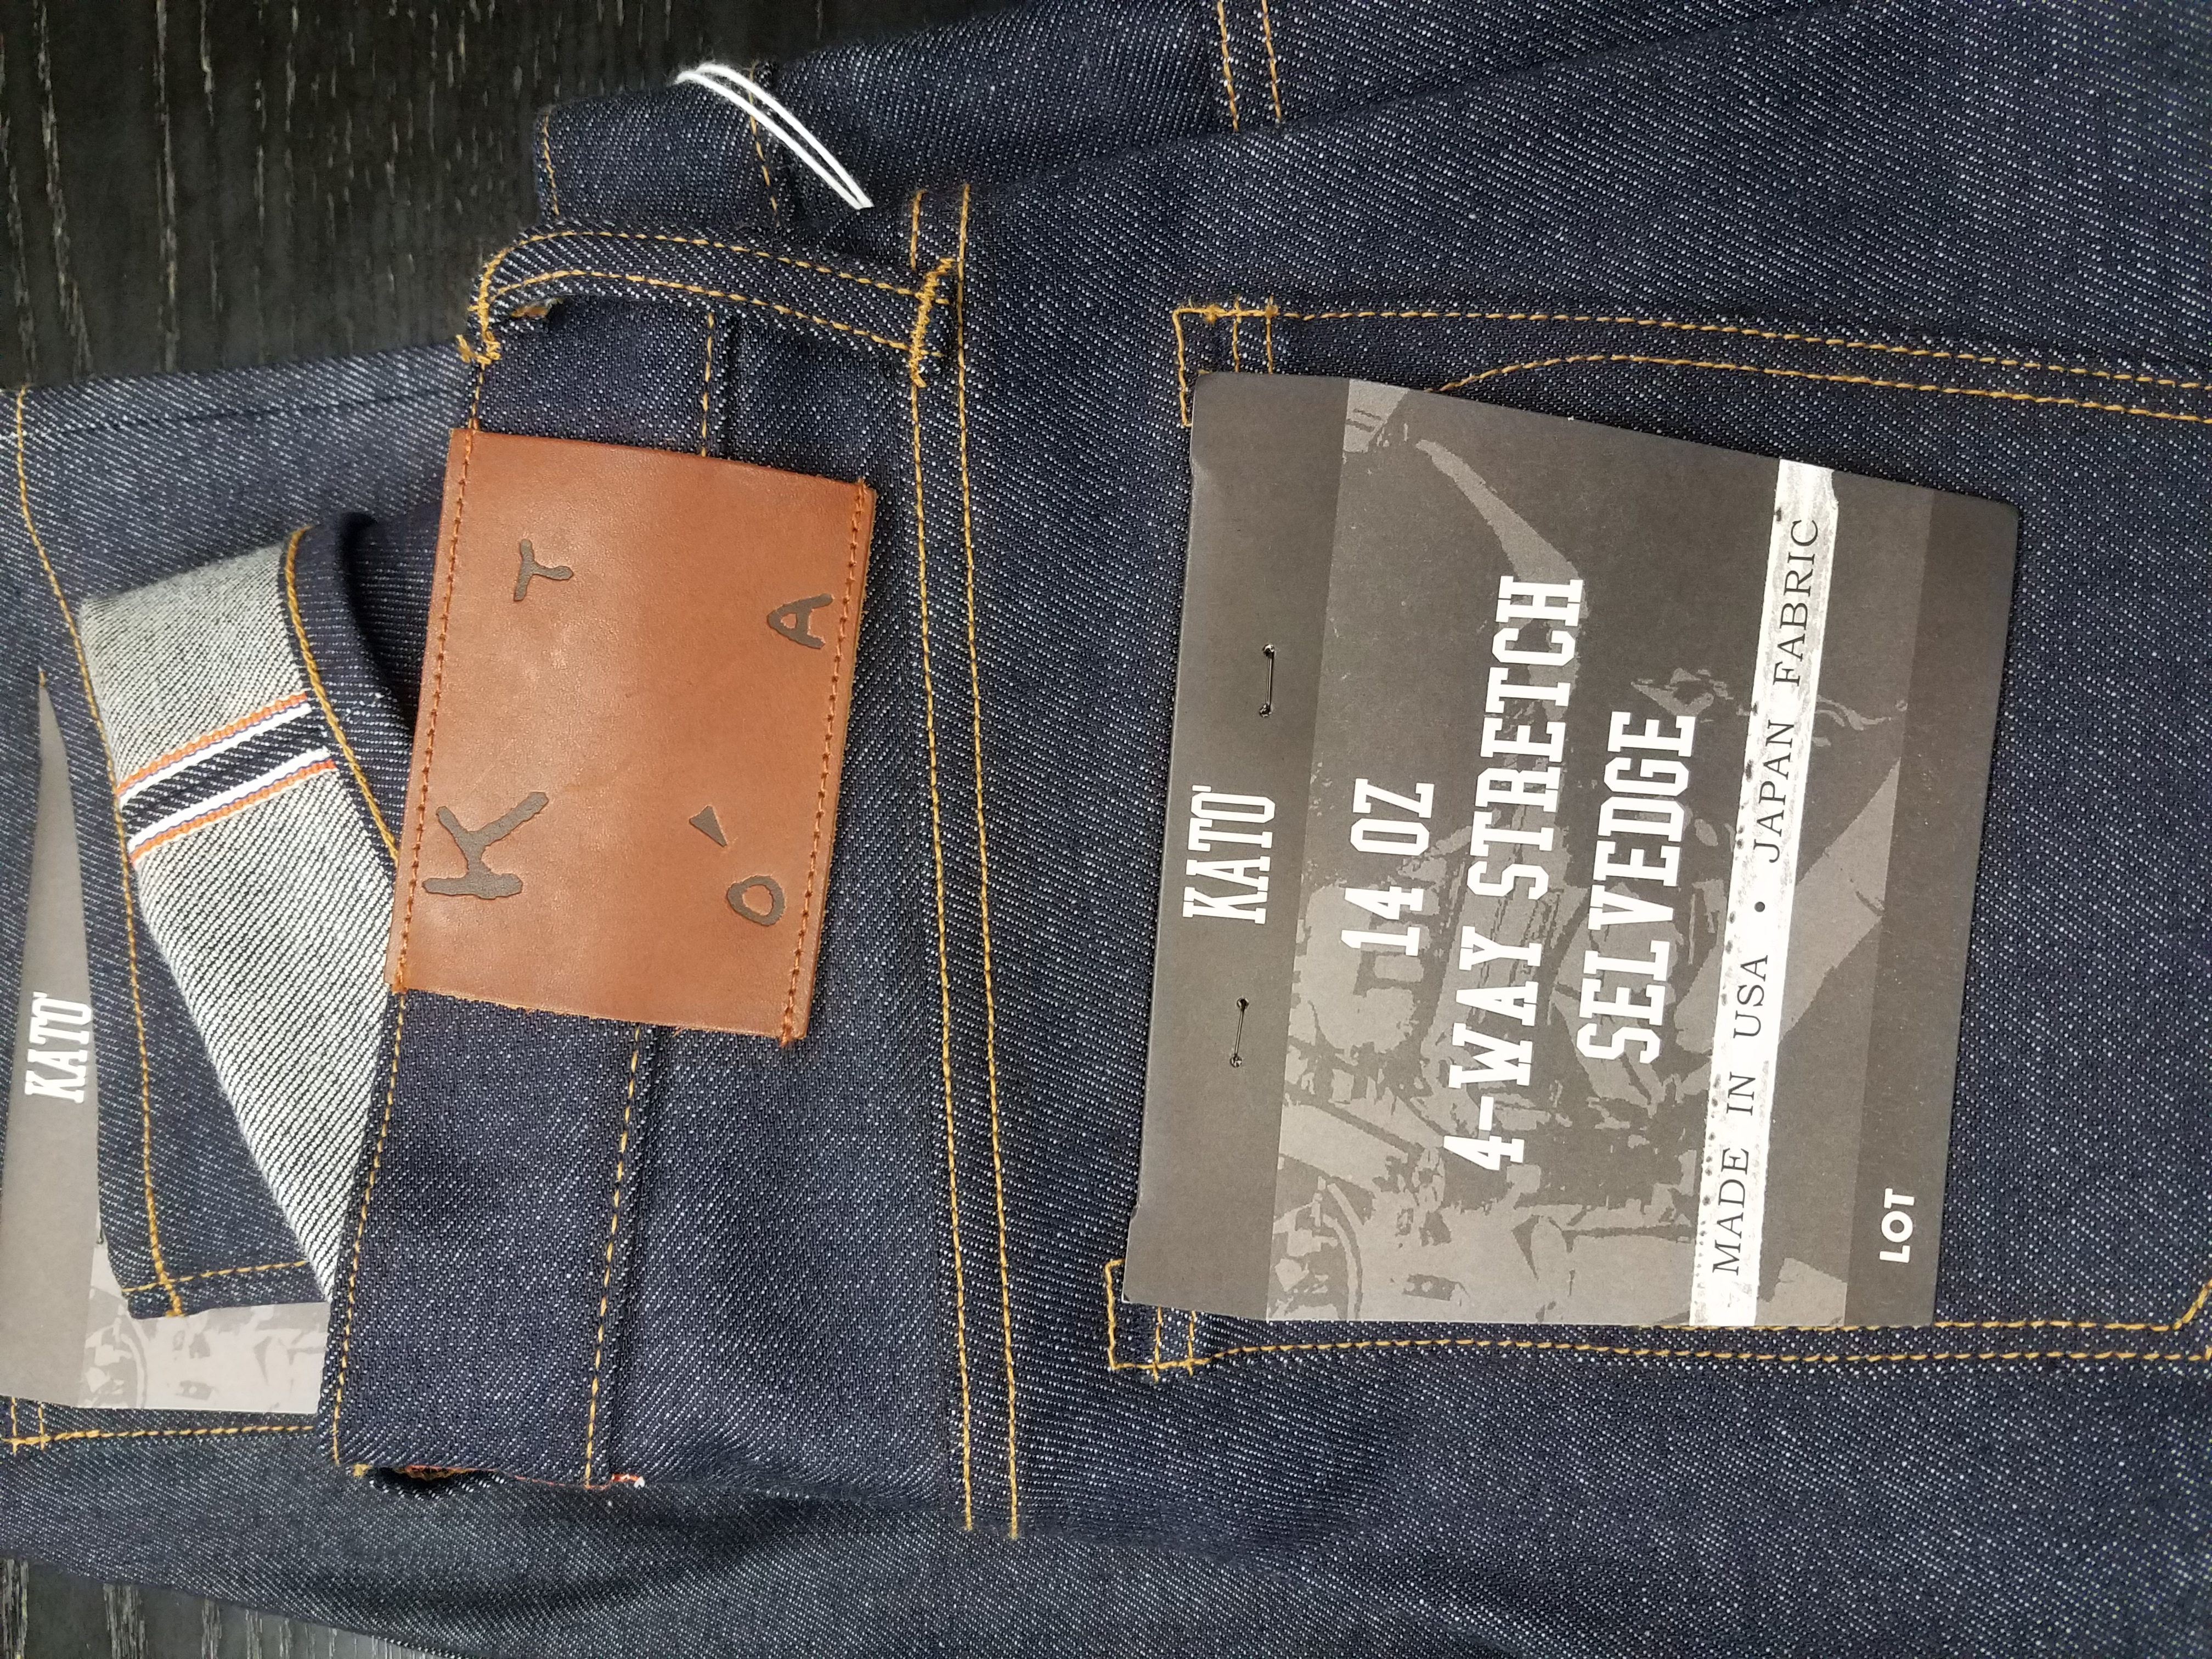 641afc14 This 14oz middleweight '4-Way' stretch denim from Kato' Brand is the worlds  first denim that stretches vertically as well as the usual horizontal  stretch.